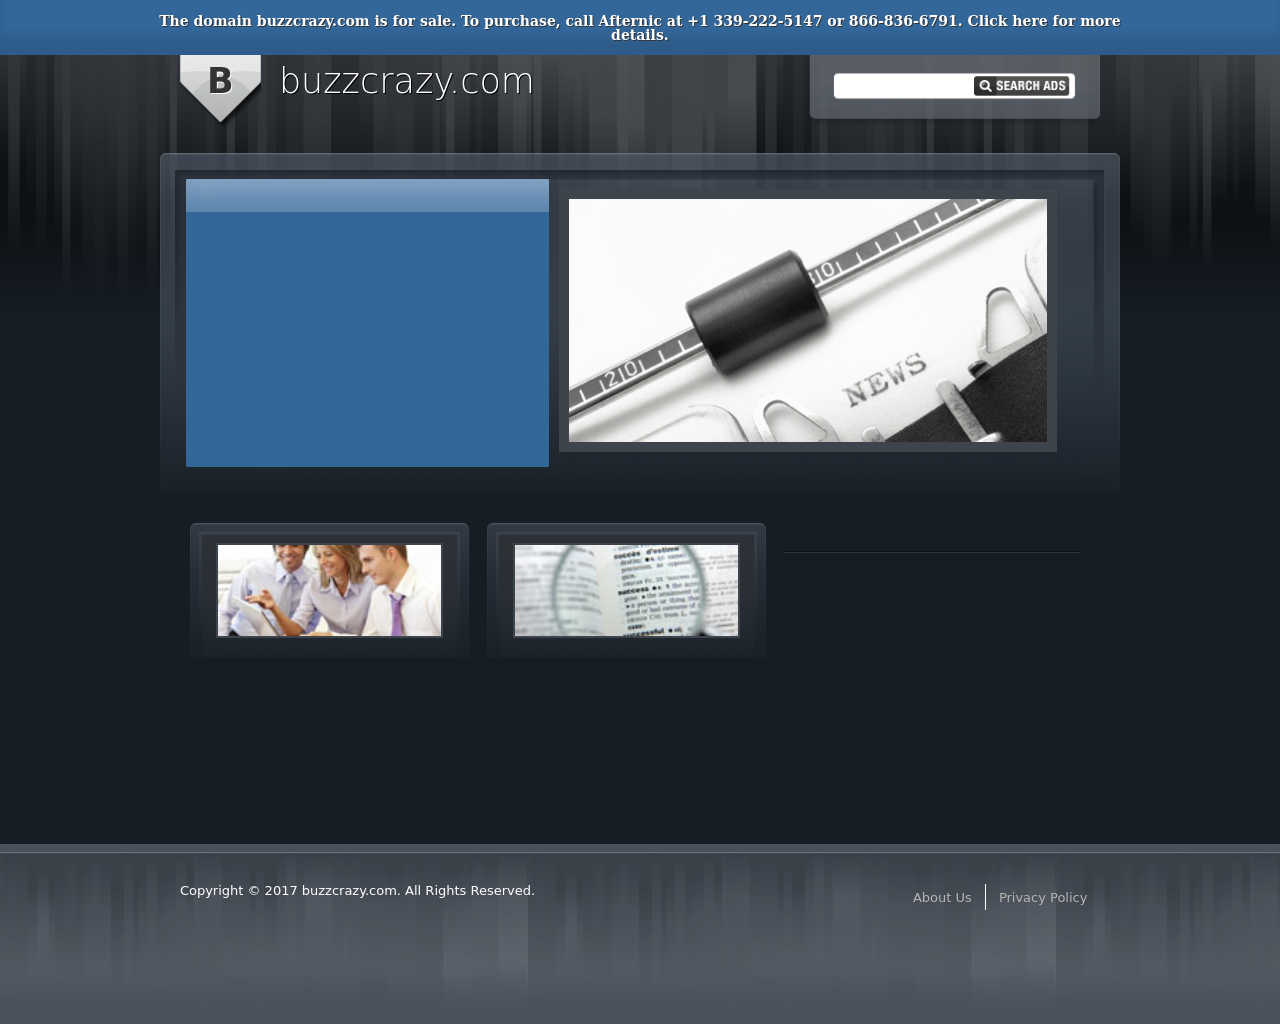 BuzzCrazy-Advertising-Reviews-Pricing